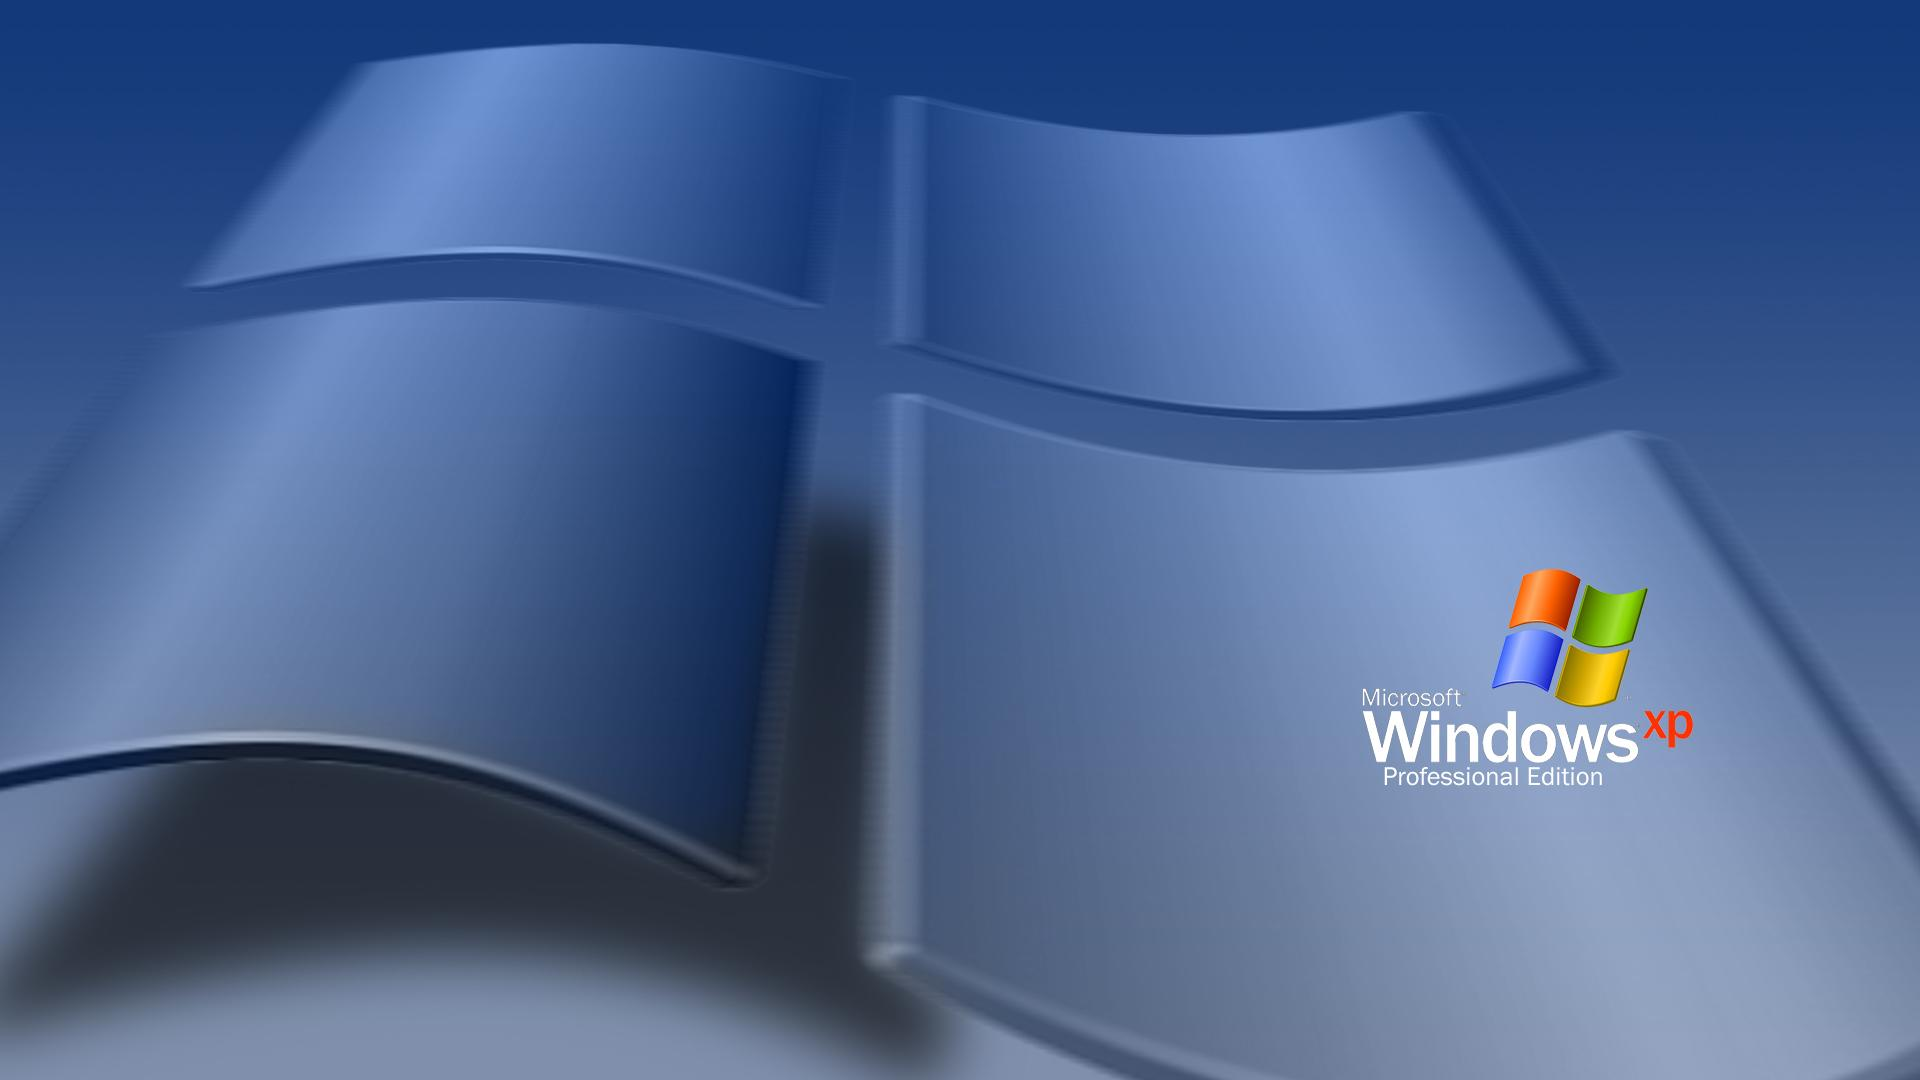 How to upgrade from windows xp | news & opinion | pcmag. Com.